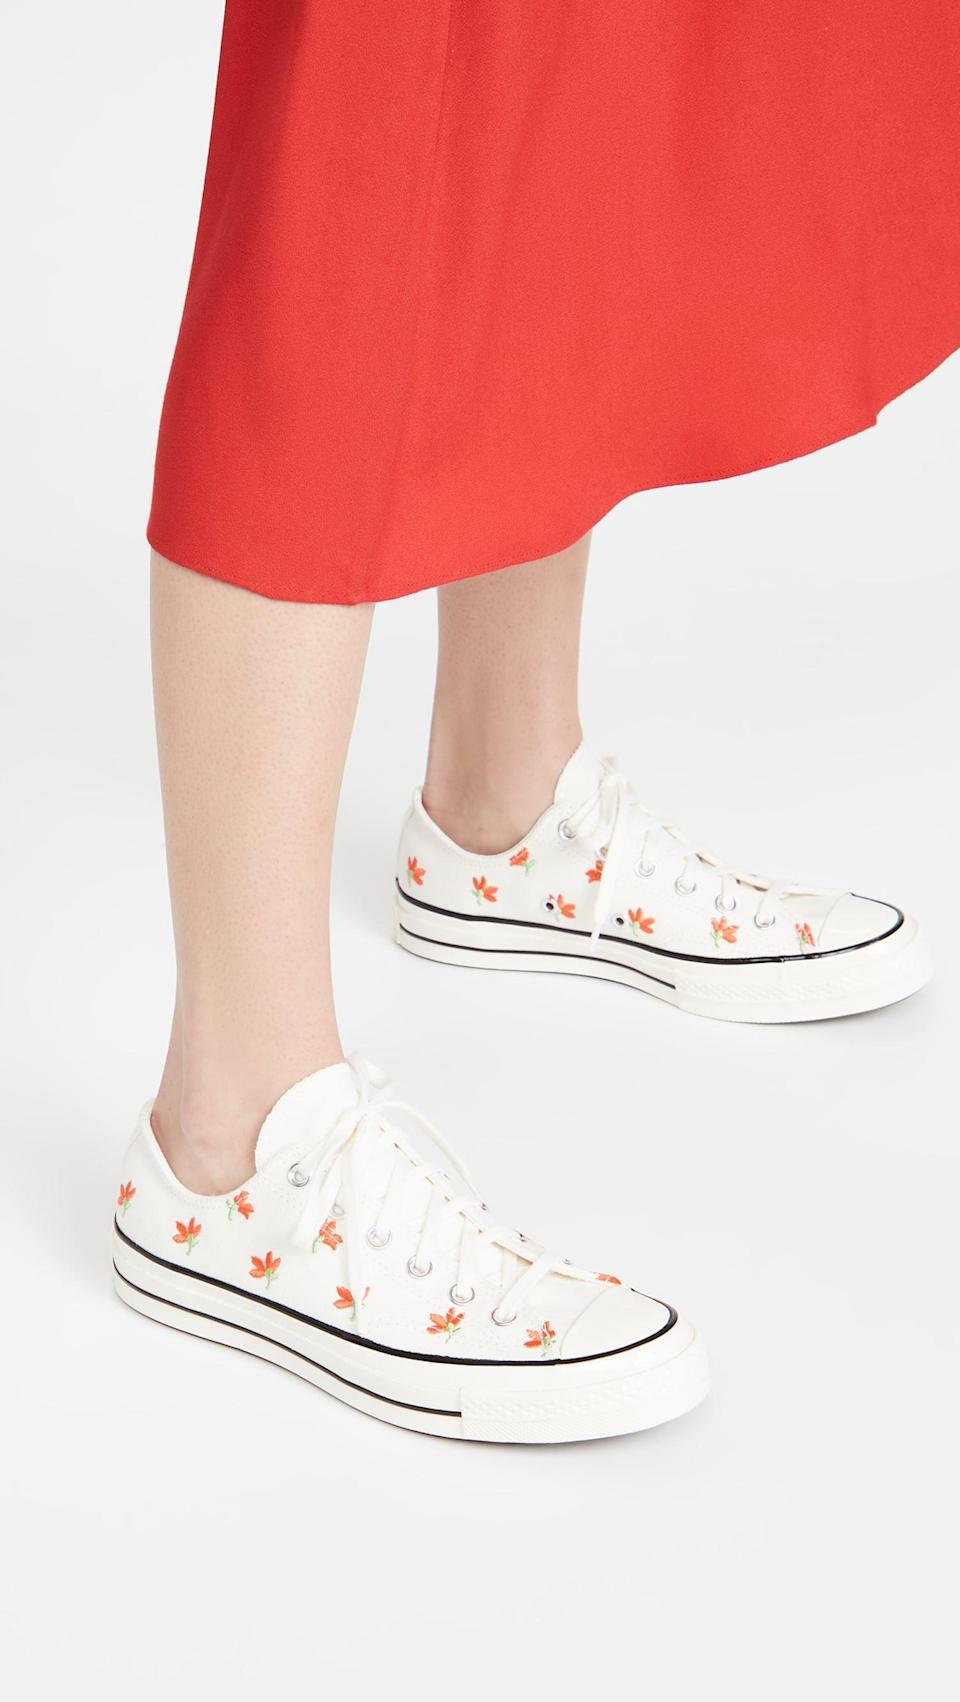 """<p><span>Converse Chuck 70 Embroidered Garden Party Sneakers</span> ($60, originally $85)</p> <p>""""I'm a sucker for florals, so these fun kicks instantly caught my attention. How can you resist the fun springtime vibe?"""" - Macy Cate Williams, senior editor, Shop</p>"""